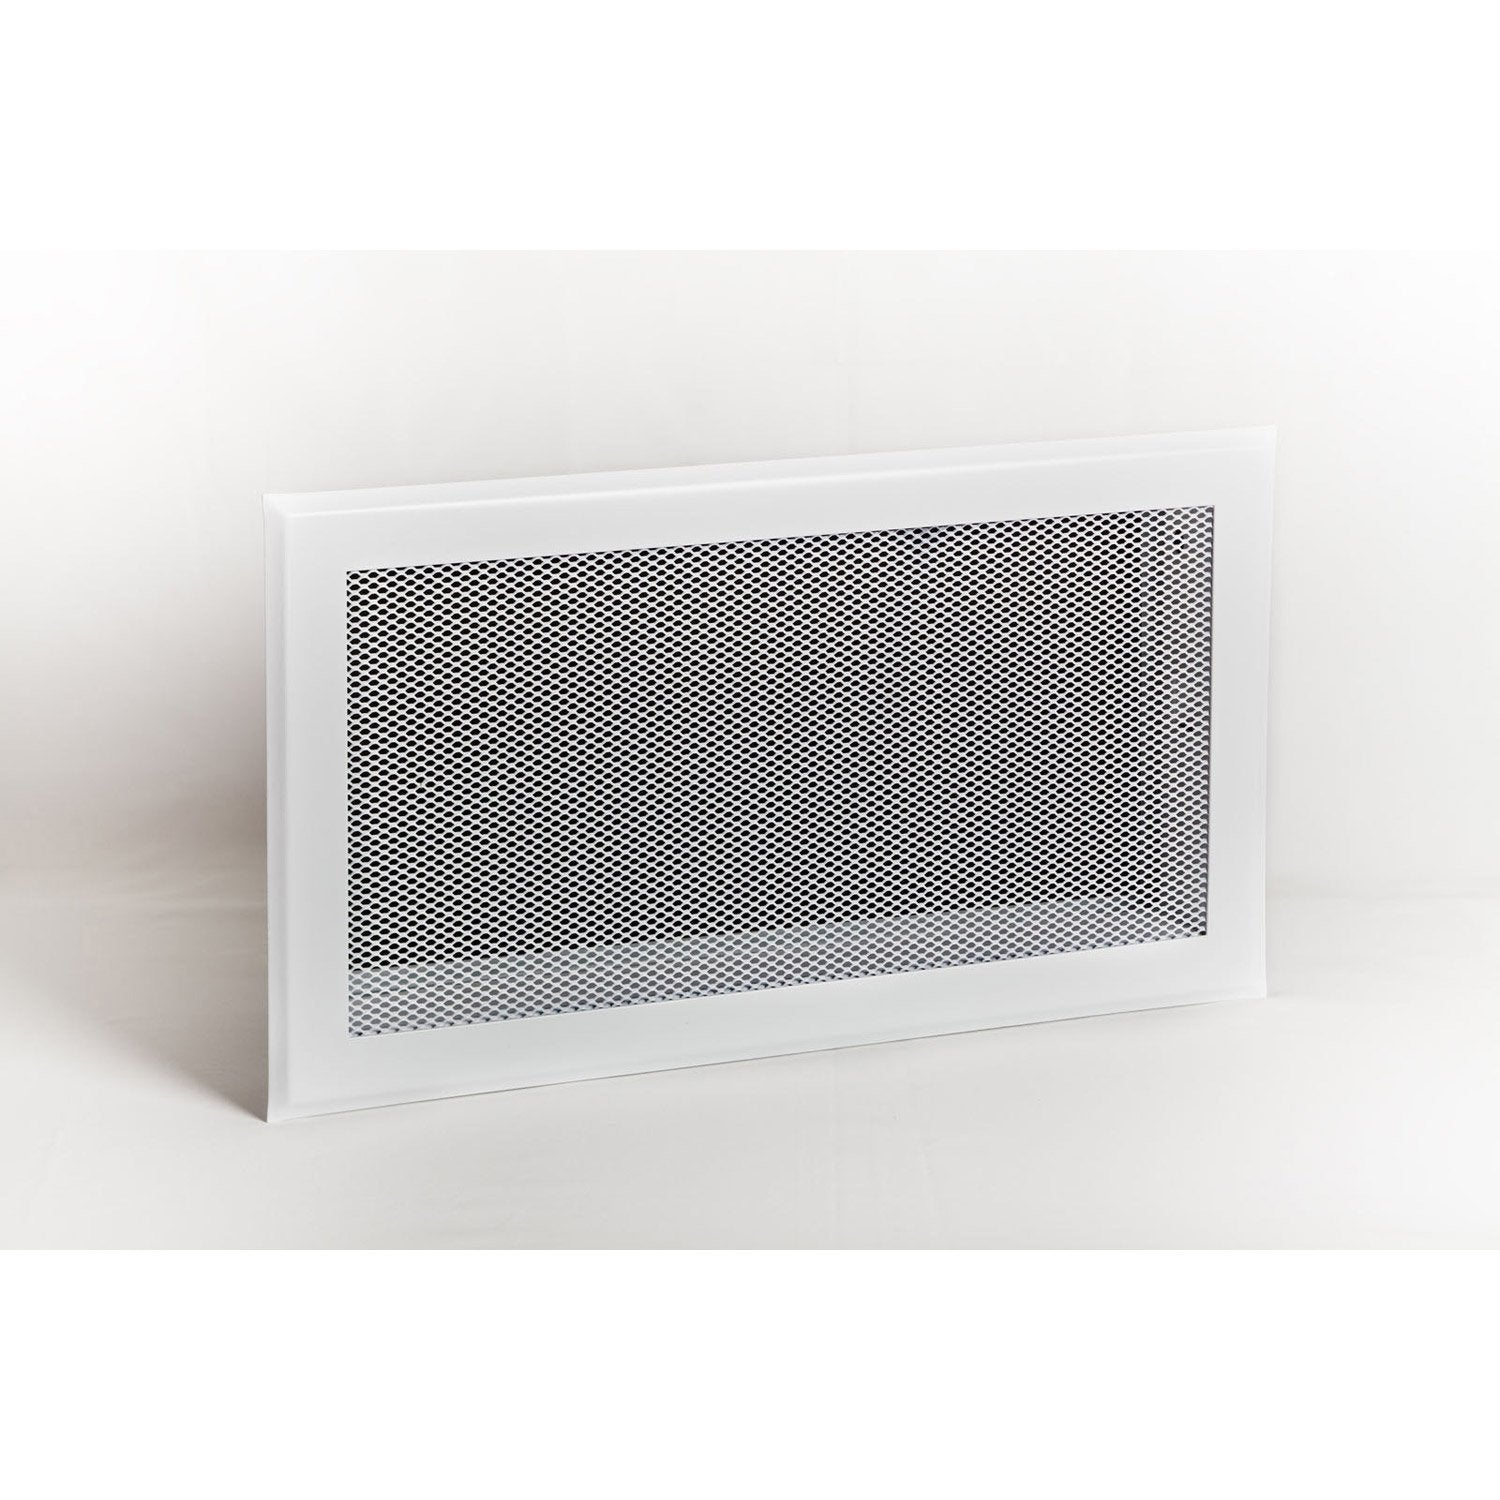 Grille De Ventilation Acier Laqu 233 233 Poxy Blanc Equation L